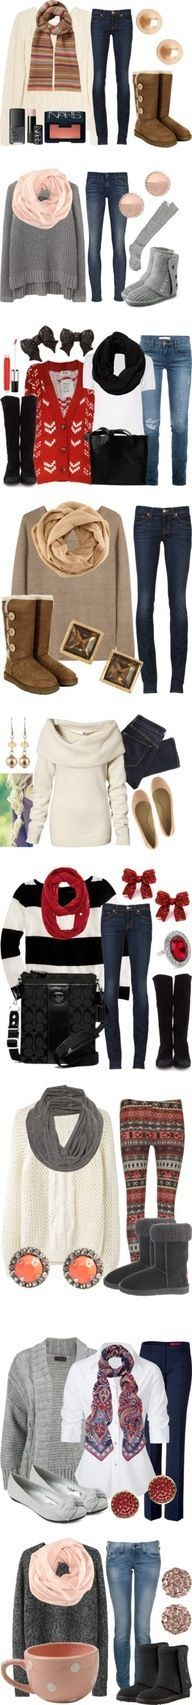 96 Best Bundle Up! images   Woman fashion, Cold winter outfits, Date ... b82966b31af8